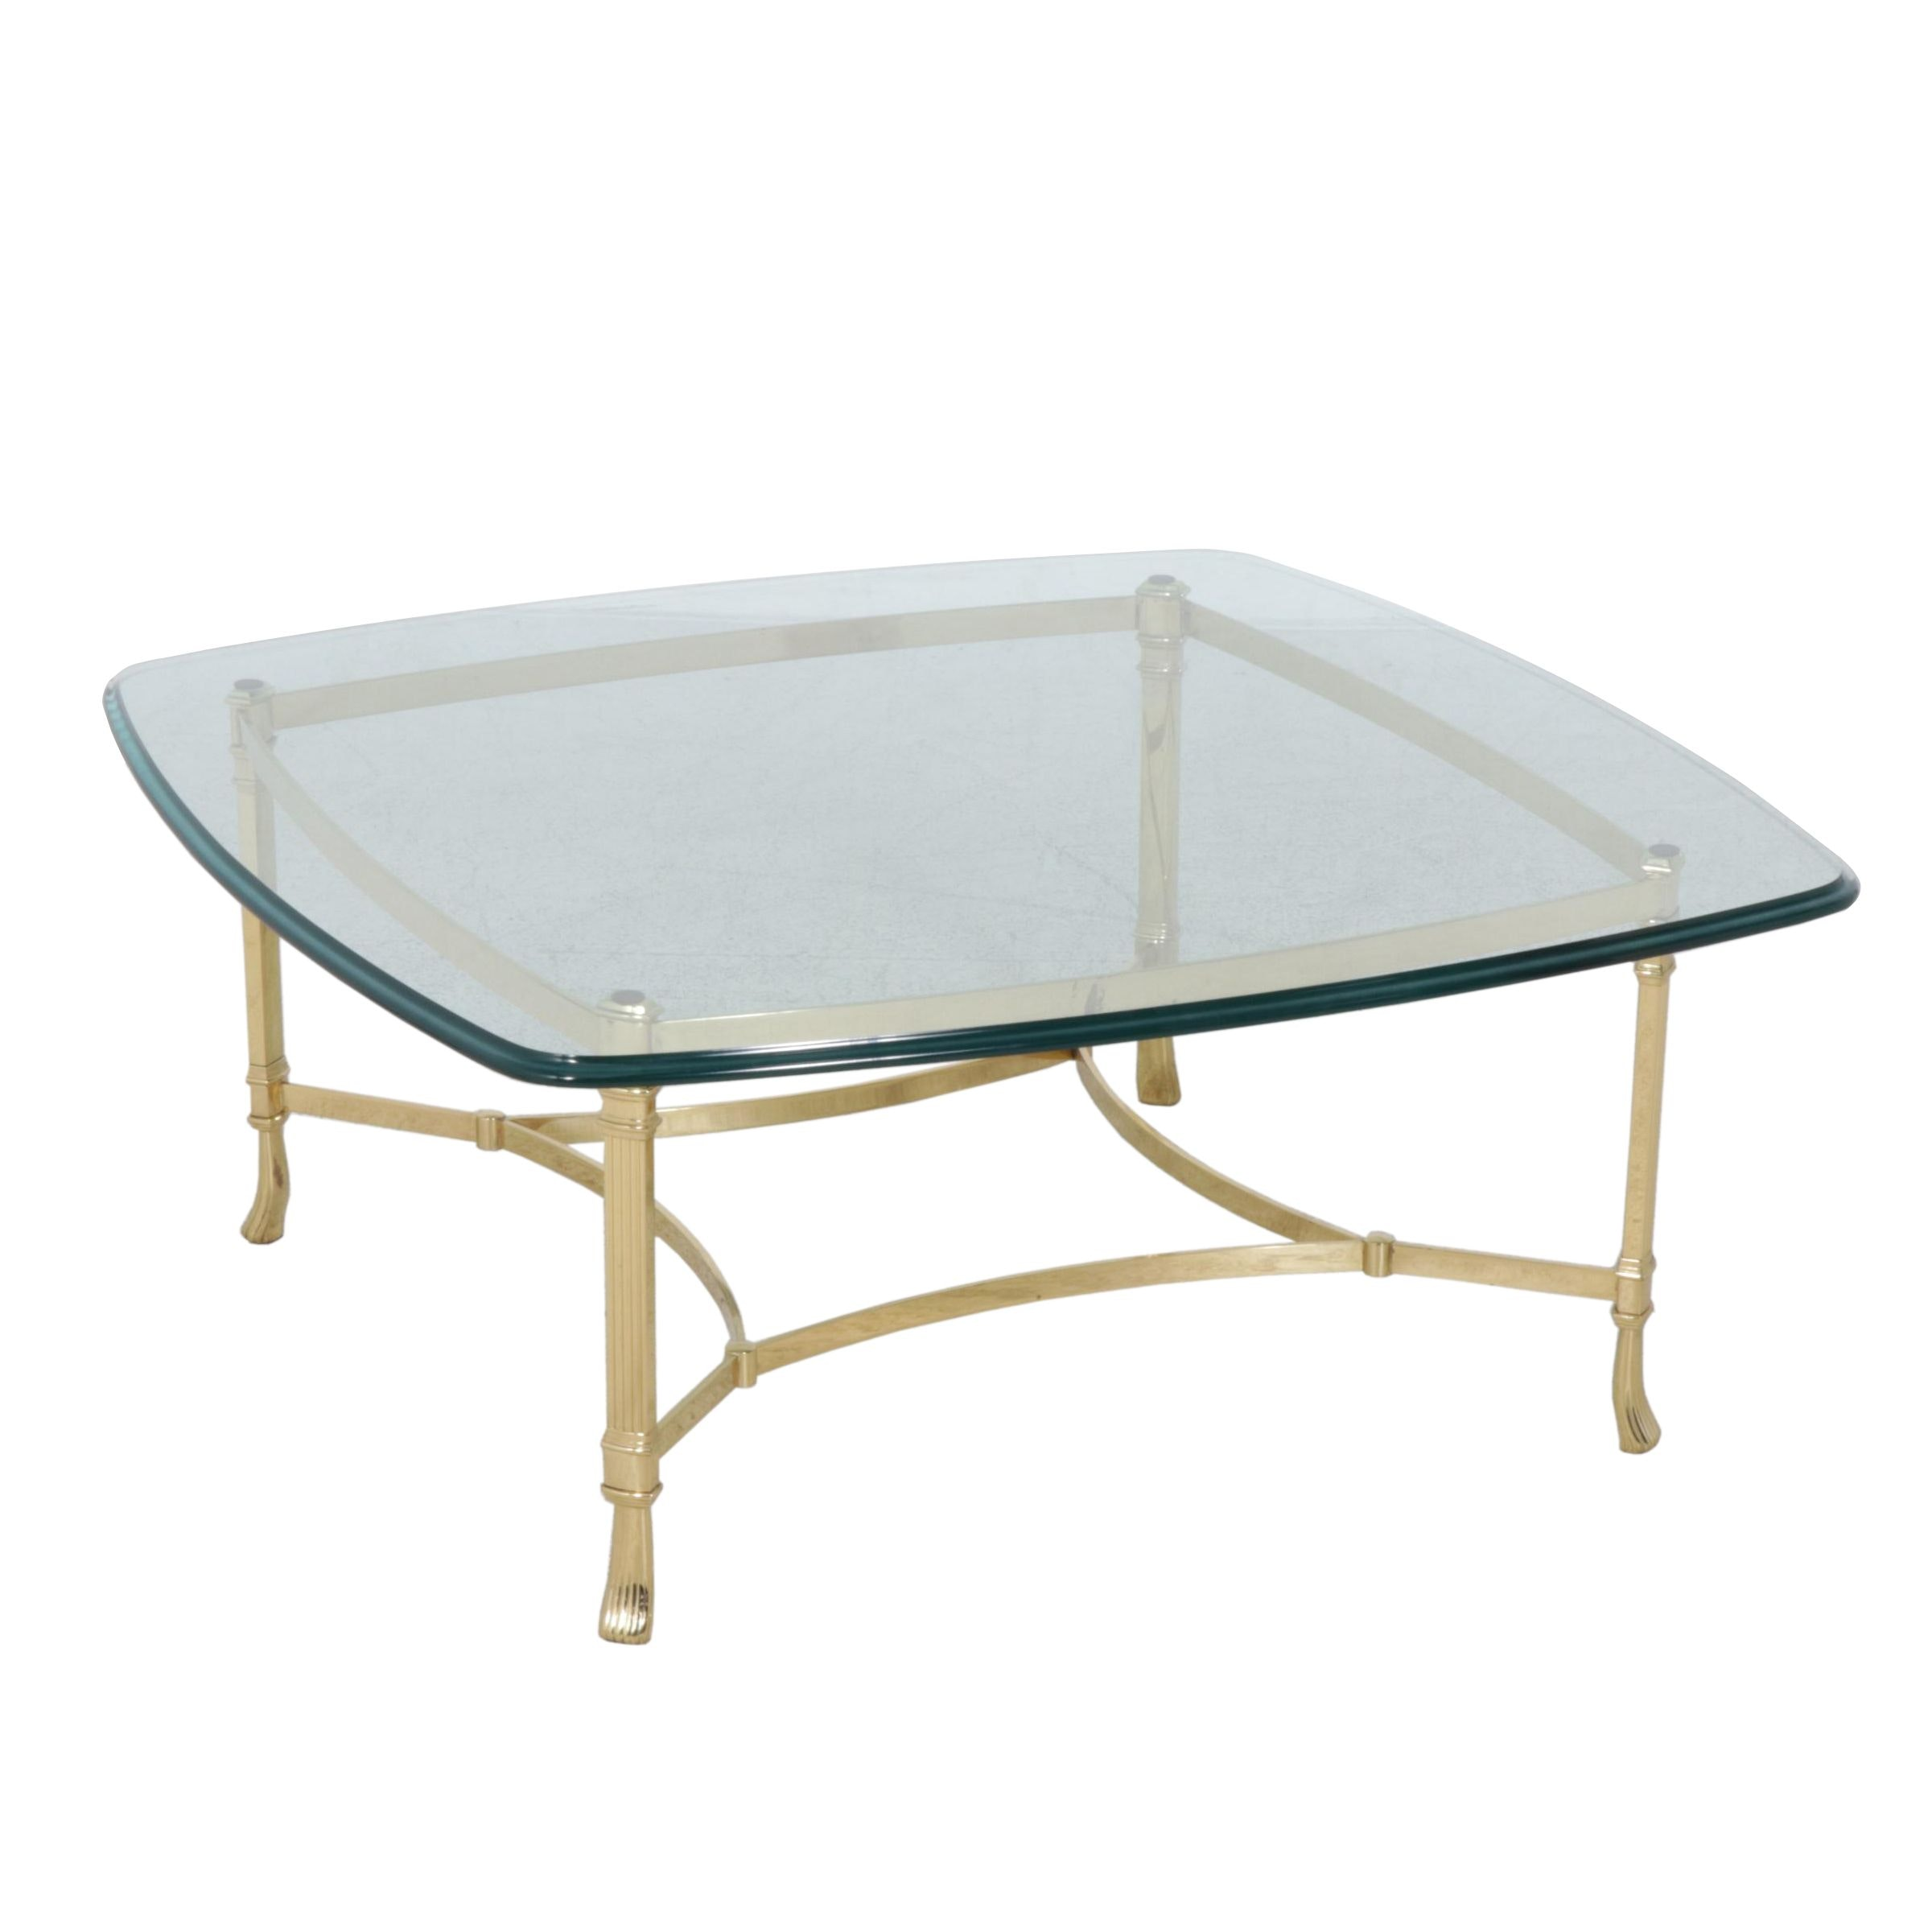 Contemporary Harden Coffee Table with Glass Top and Brass Base